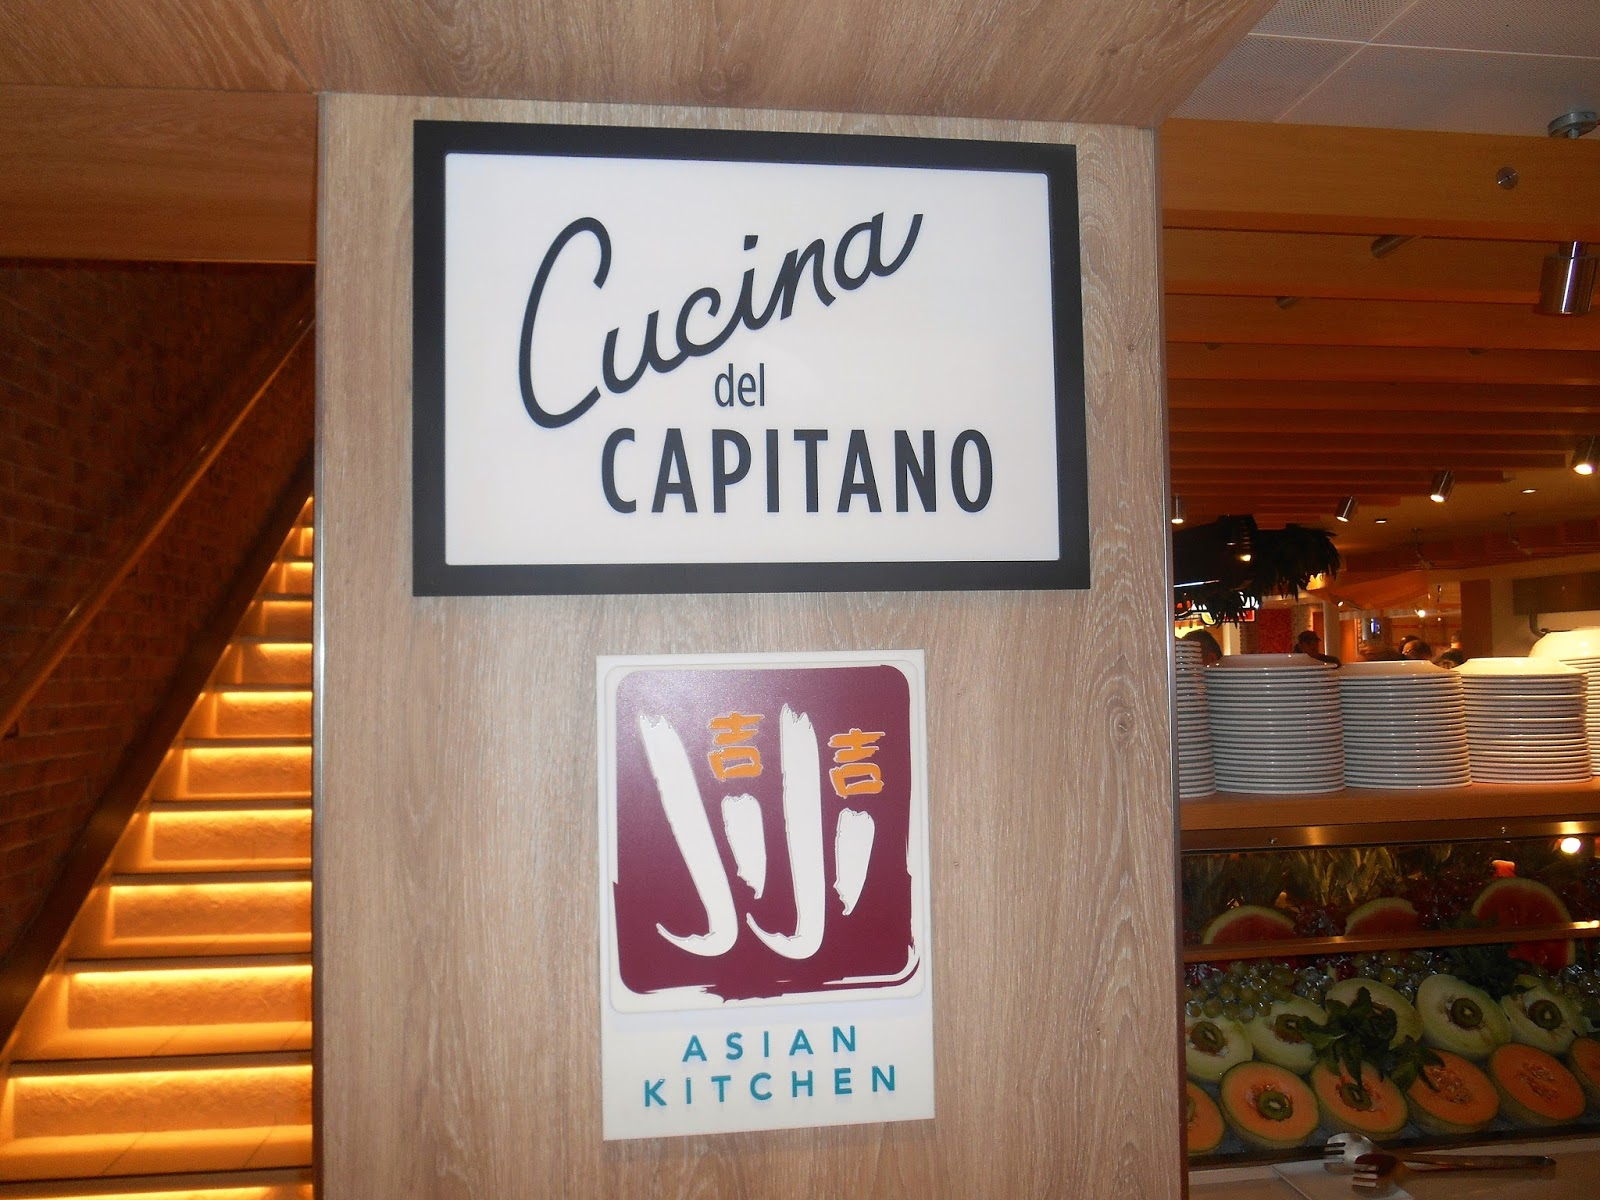 Carnival Magic Cucina Del Capitano Lunch Menu Lefty Writes Day 7 Our Second Fun Day At Sea On The